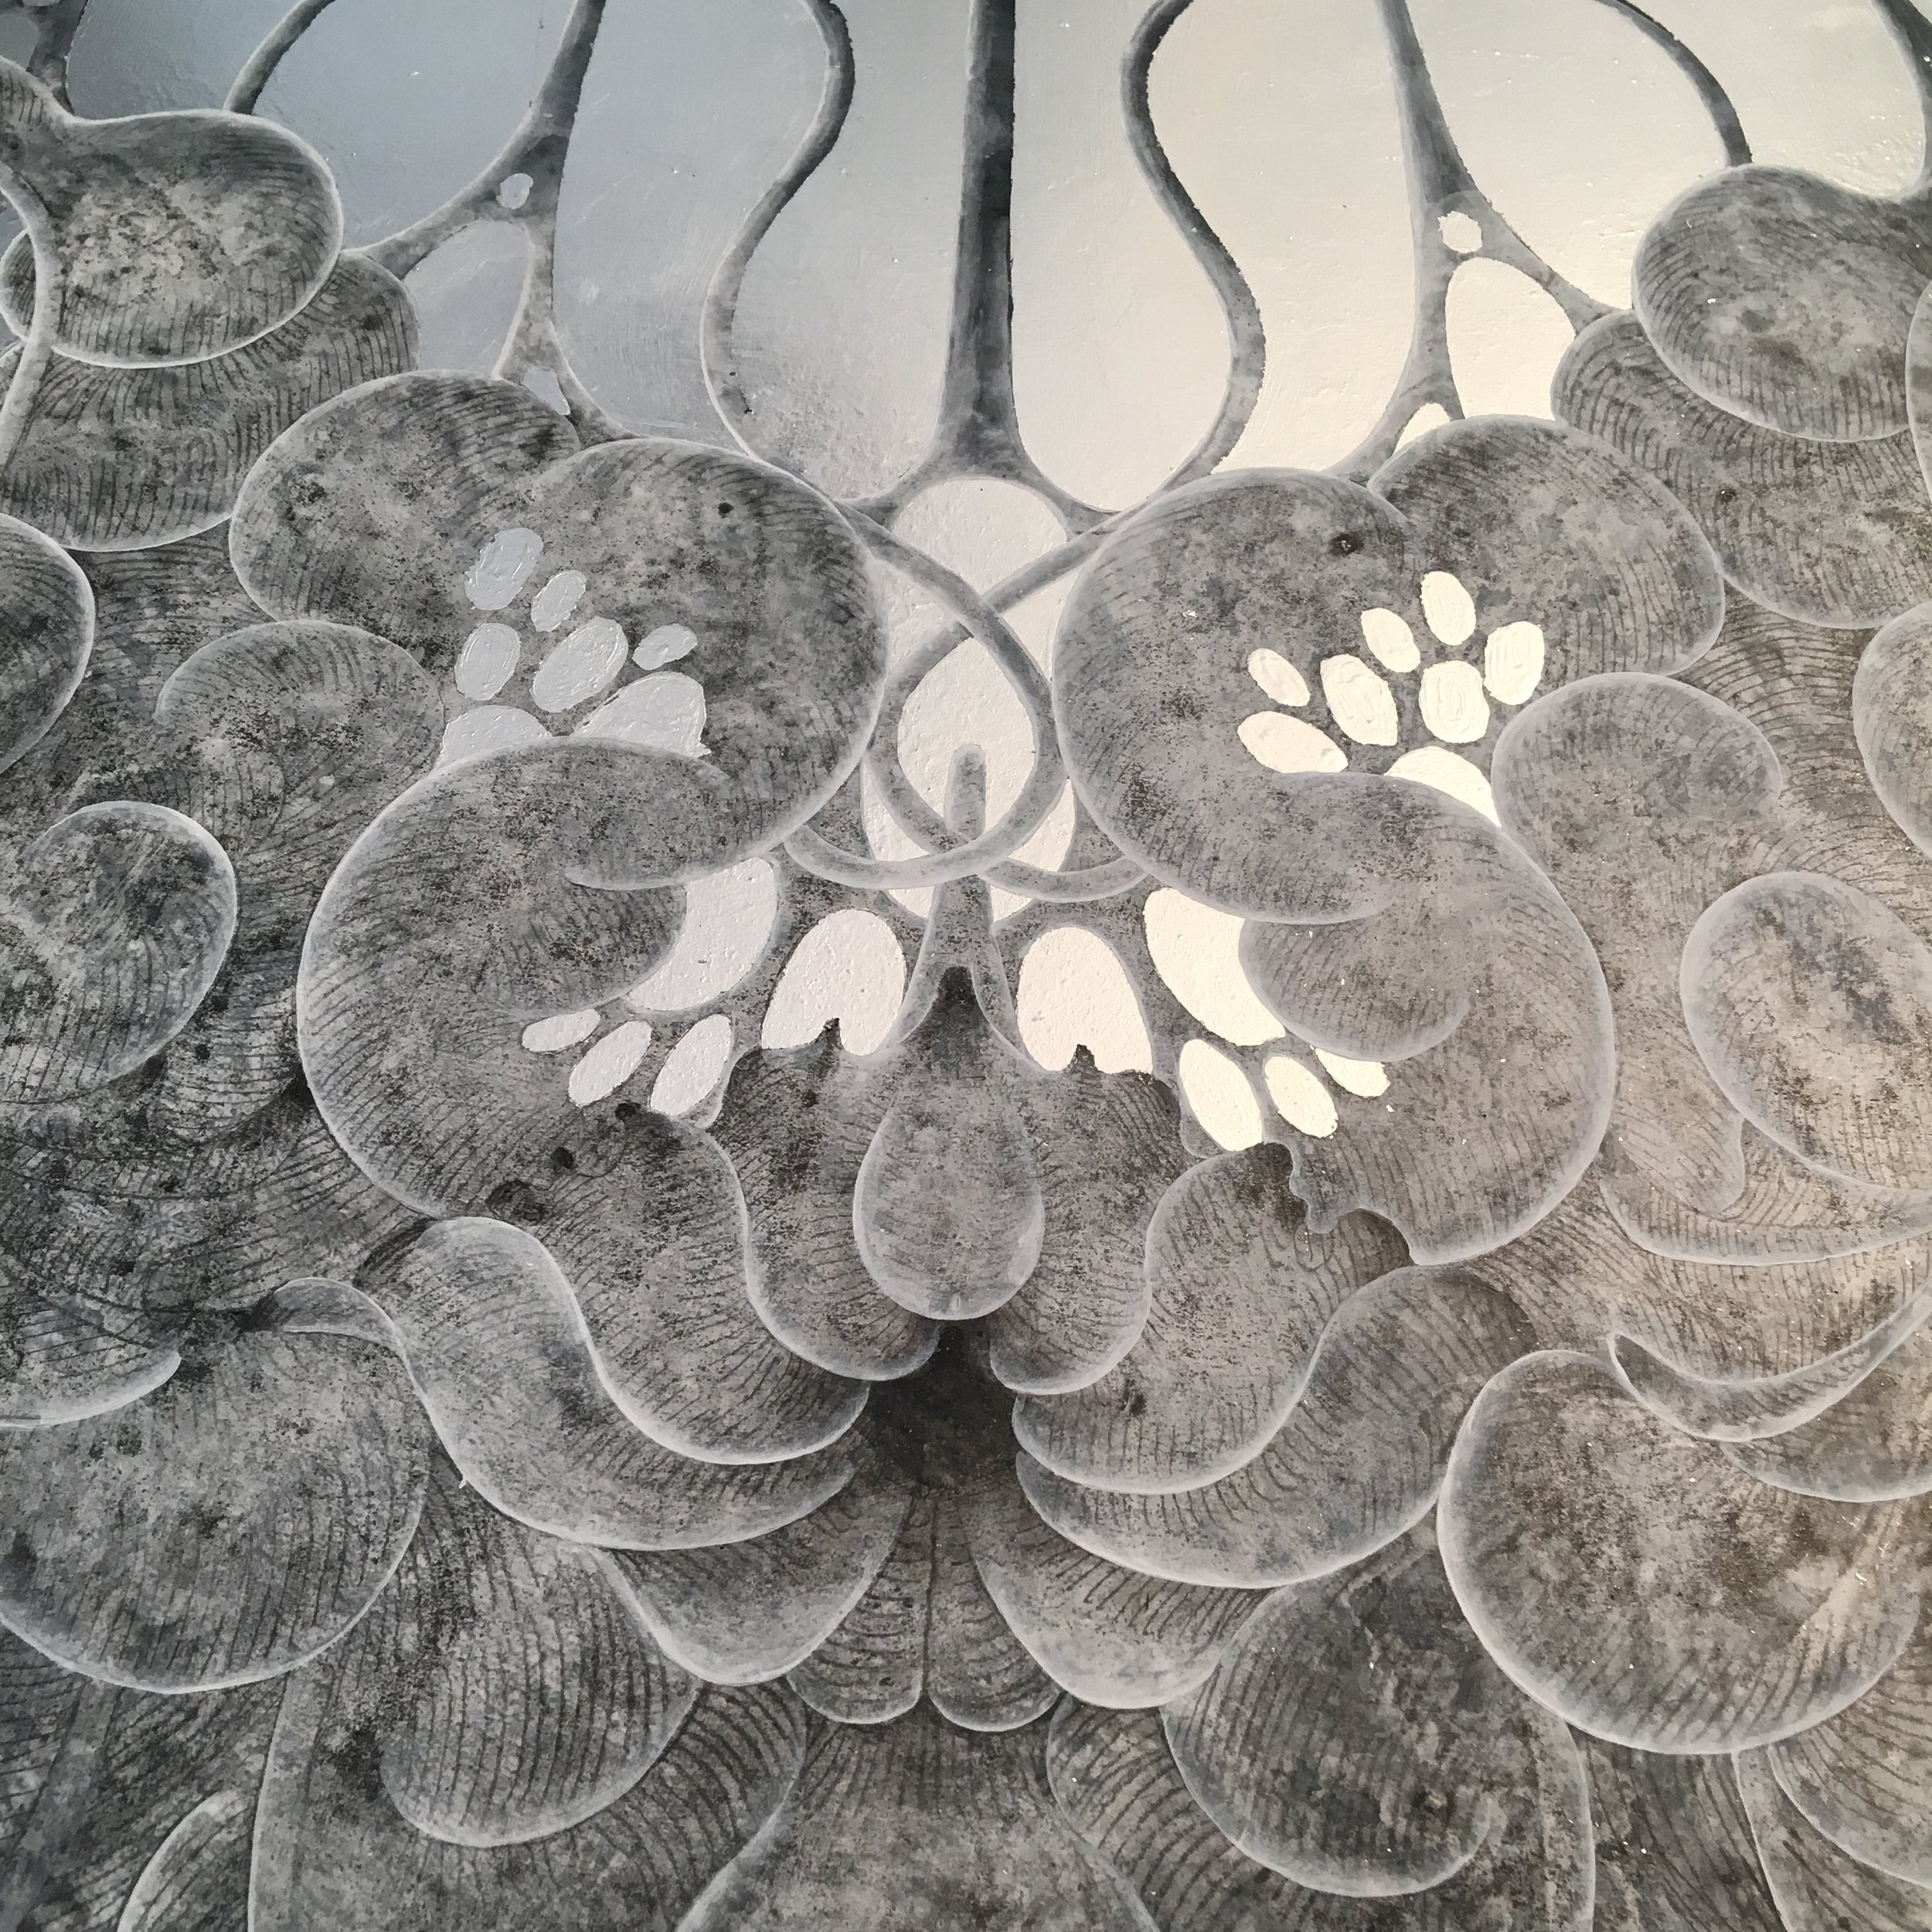 Detail of a work in progress by Carol Prusa.